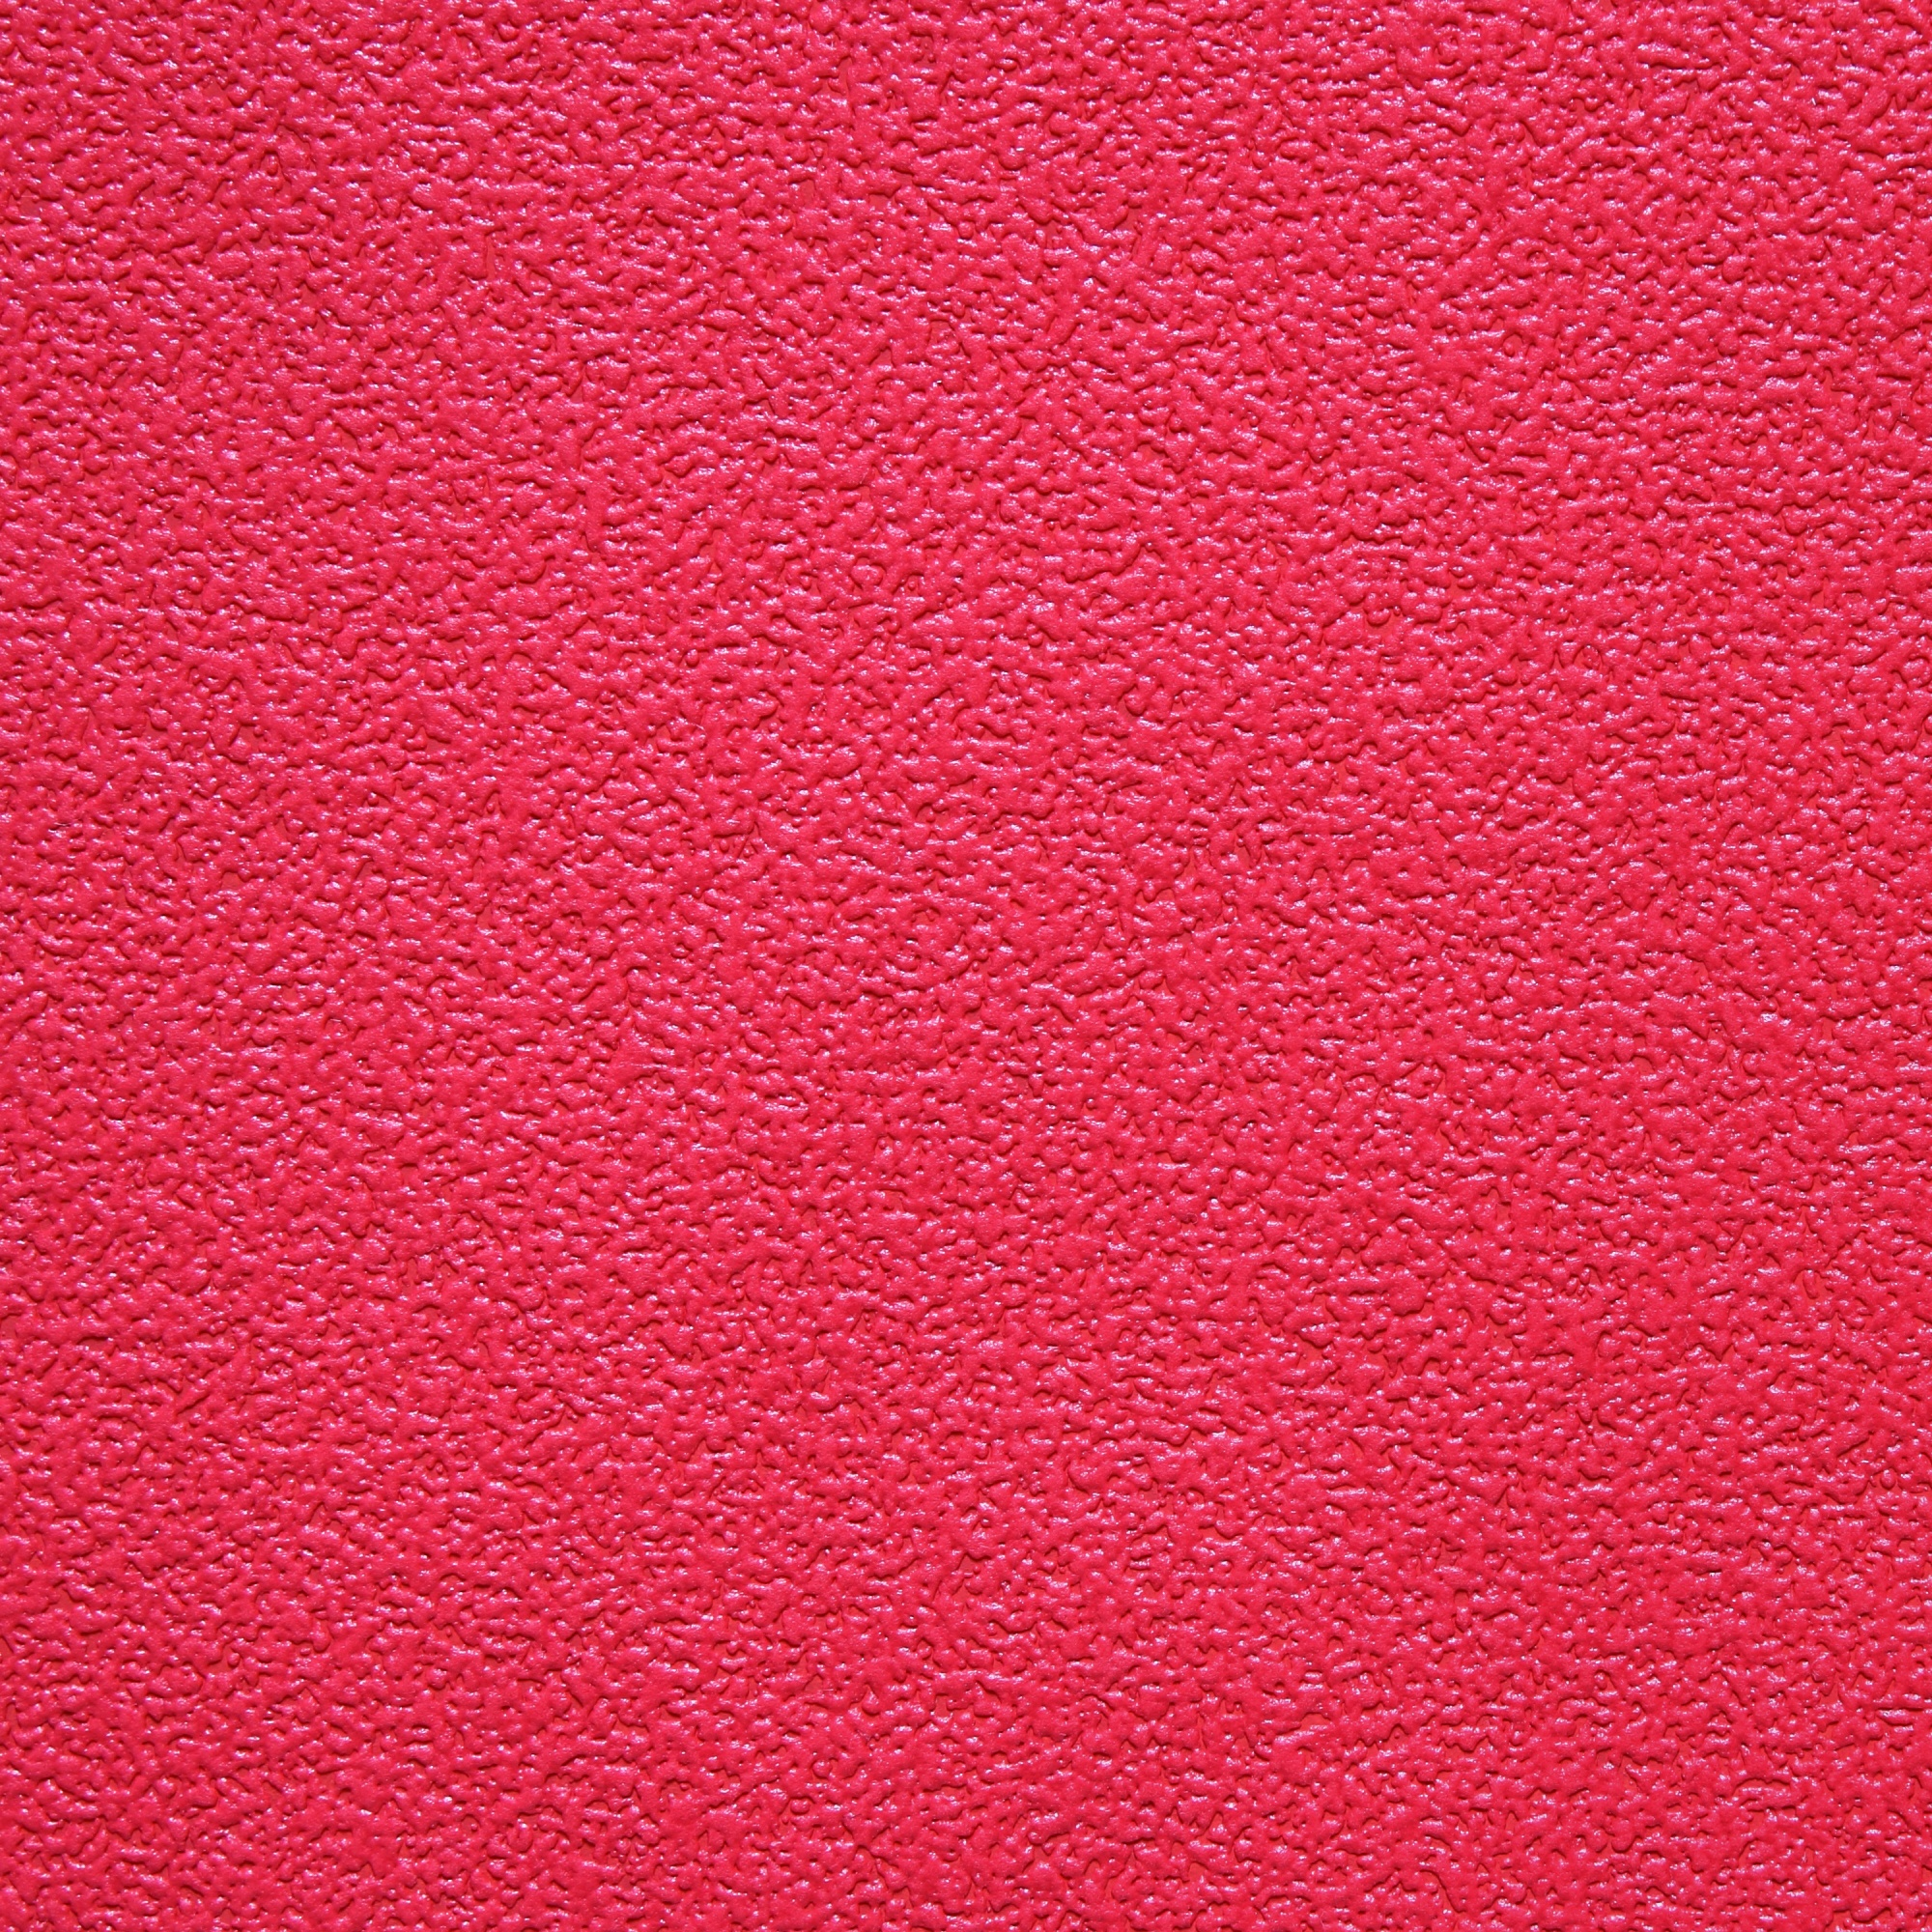 Red abstract texture for background